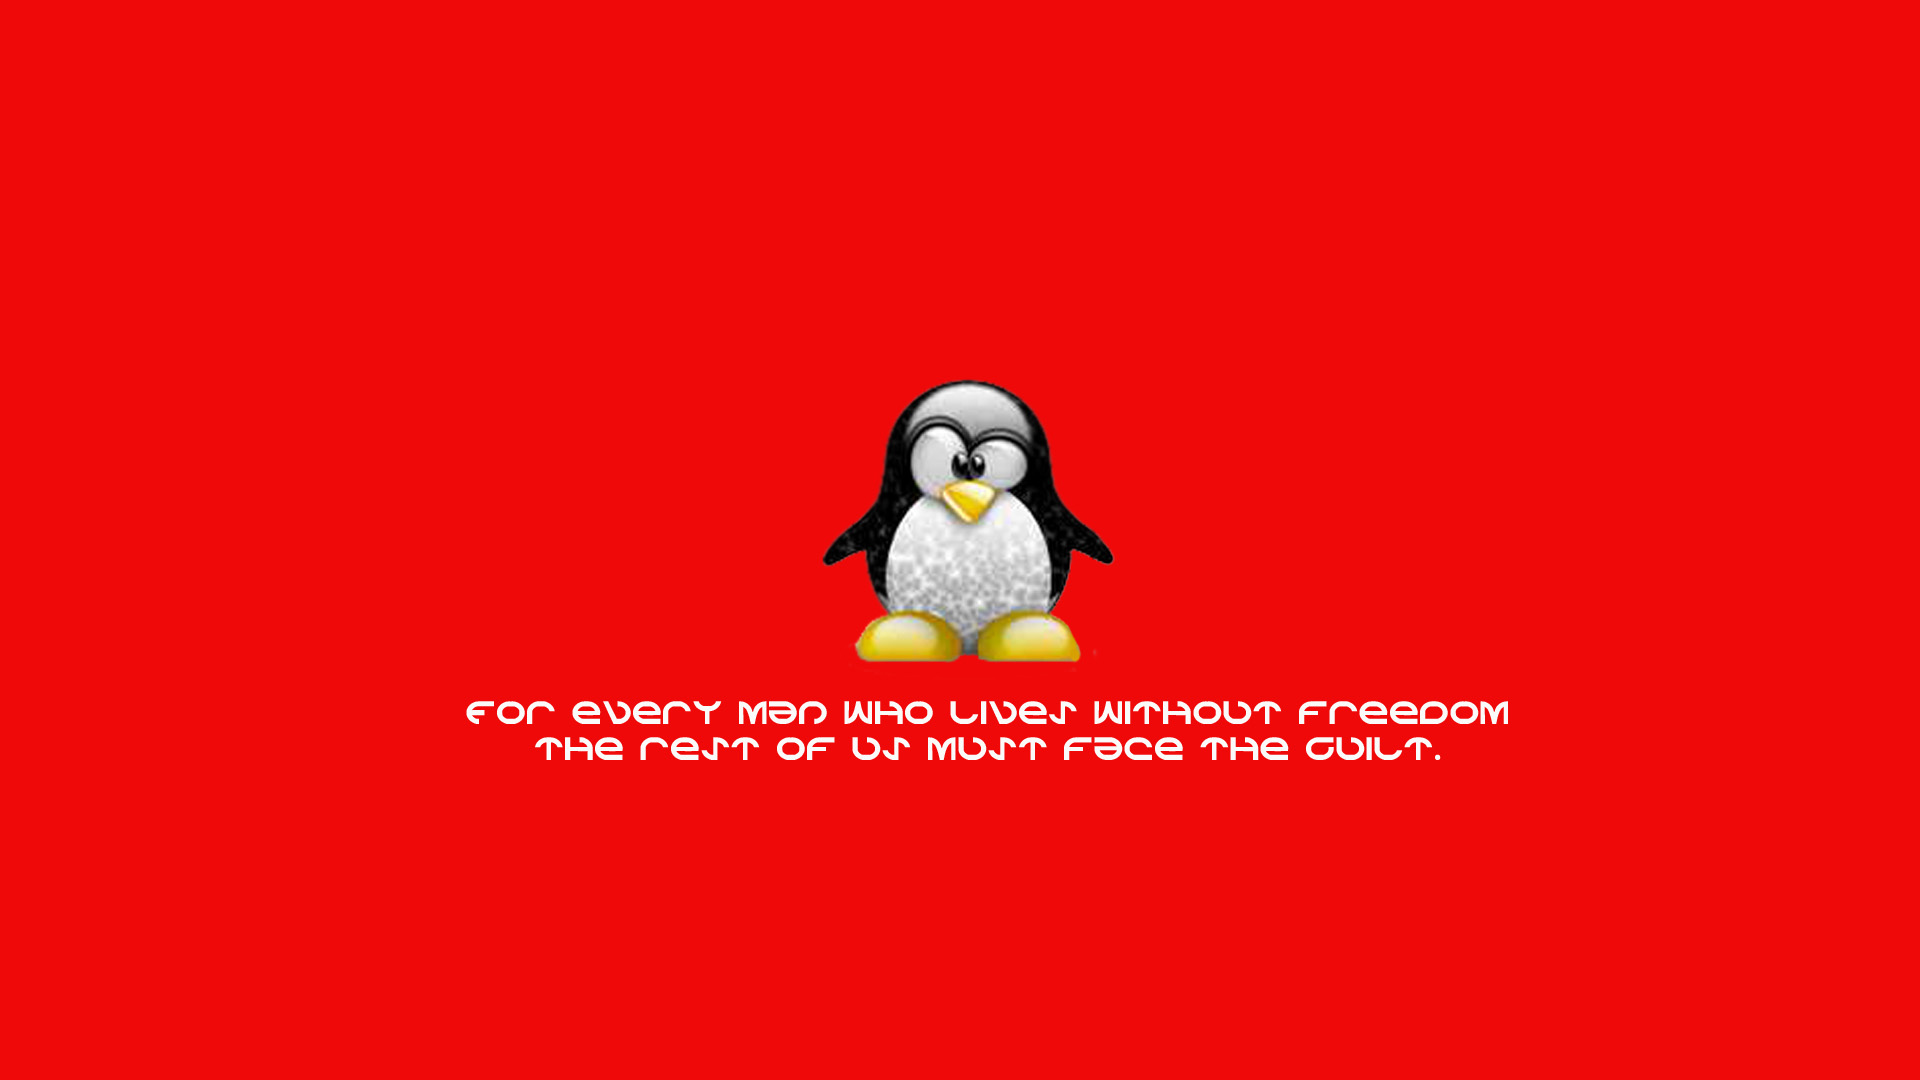 Linux HD Pictures Wallpapers HD Tux Desktop8032 Linux HD Wallpapers 1920x1080